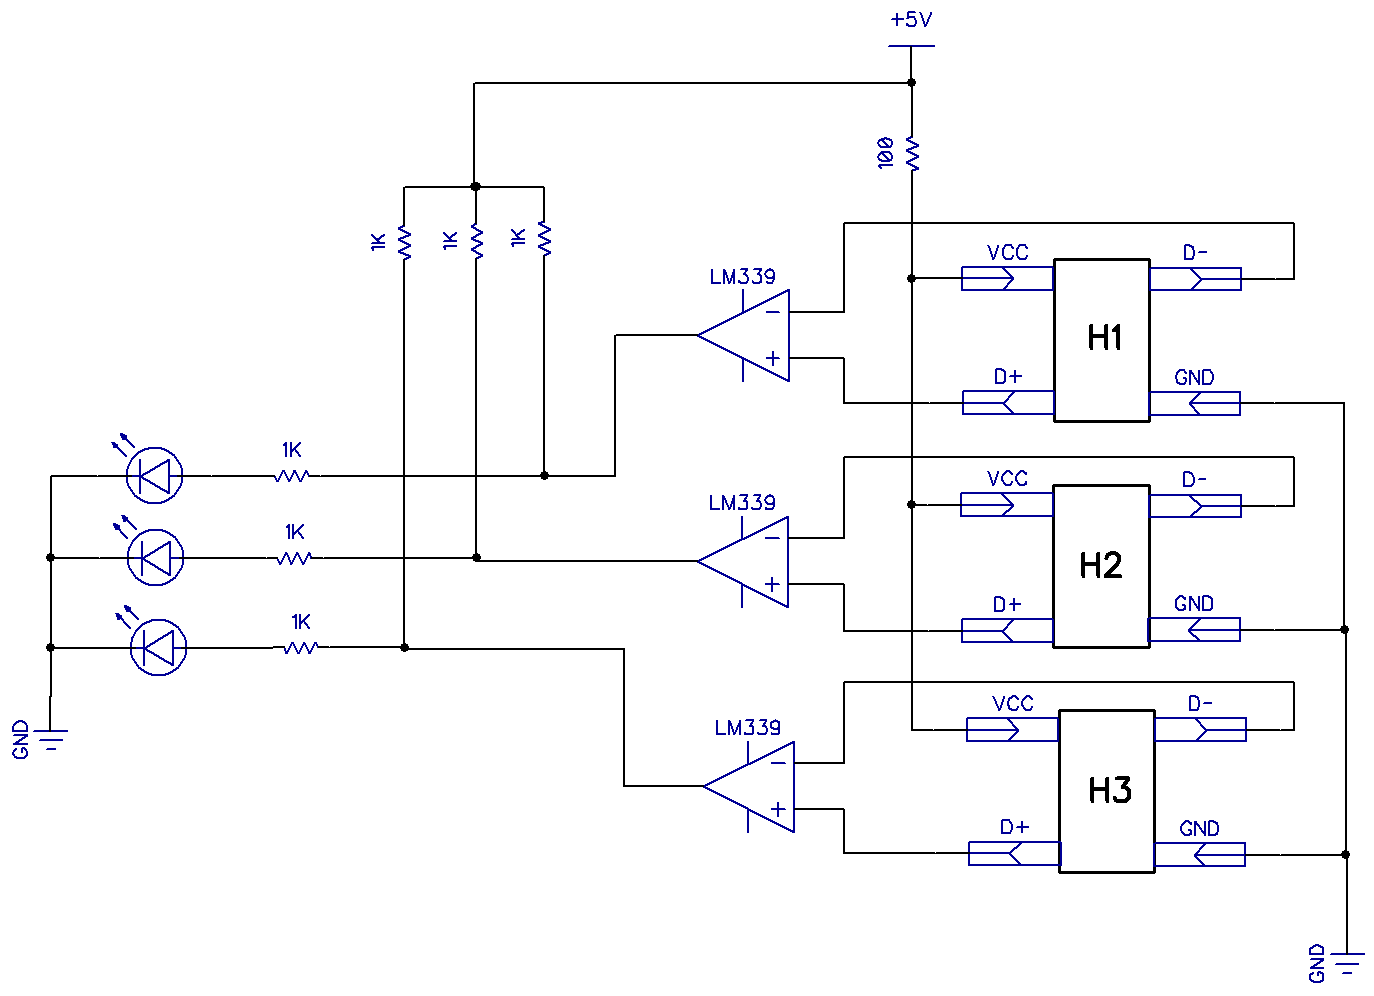 This schematic diagram shows how to test the hall effect sensors: